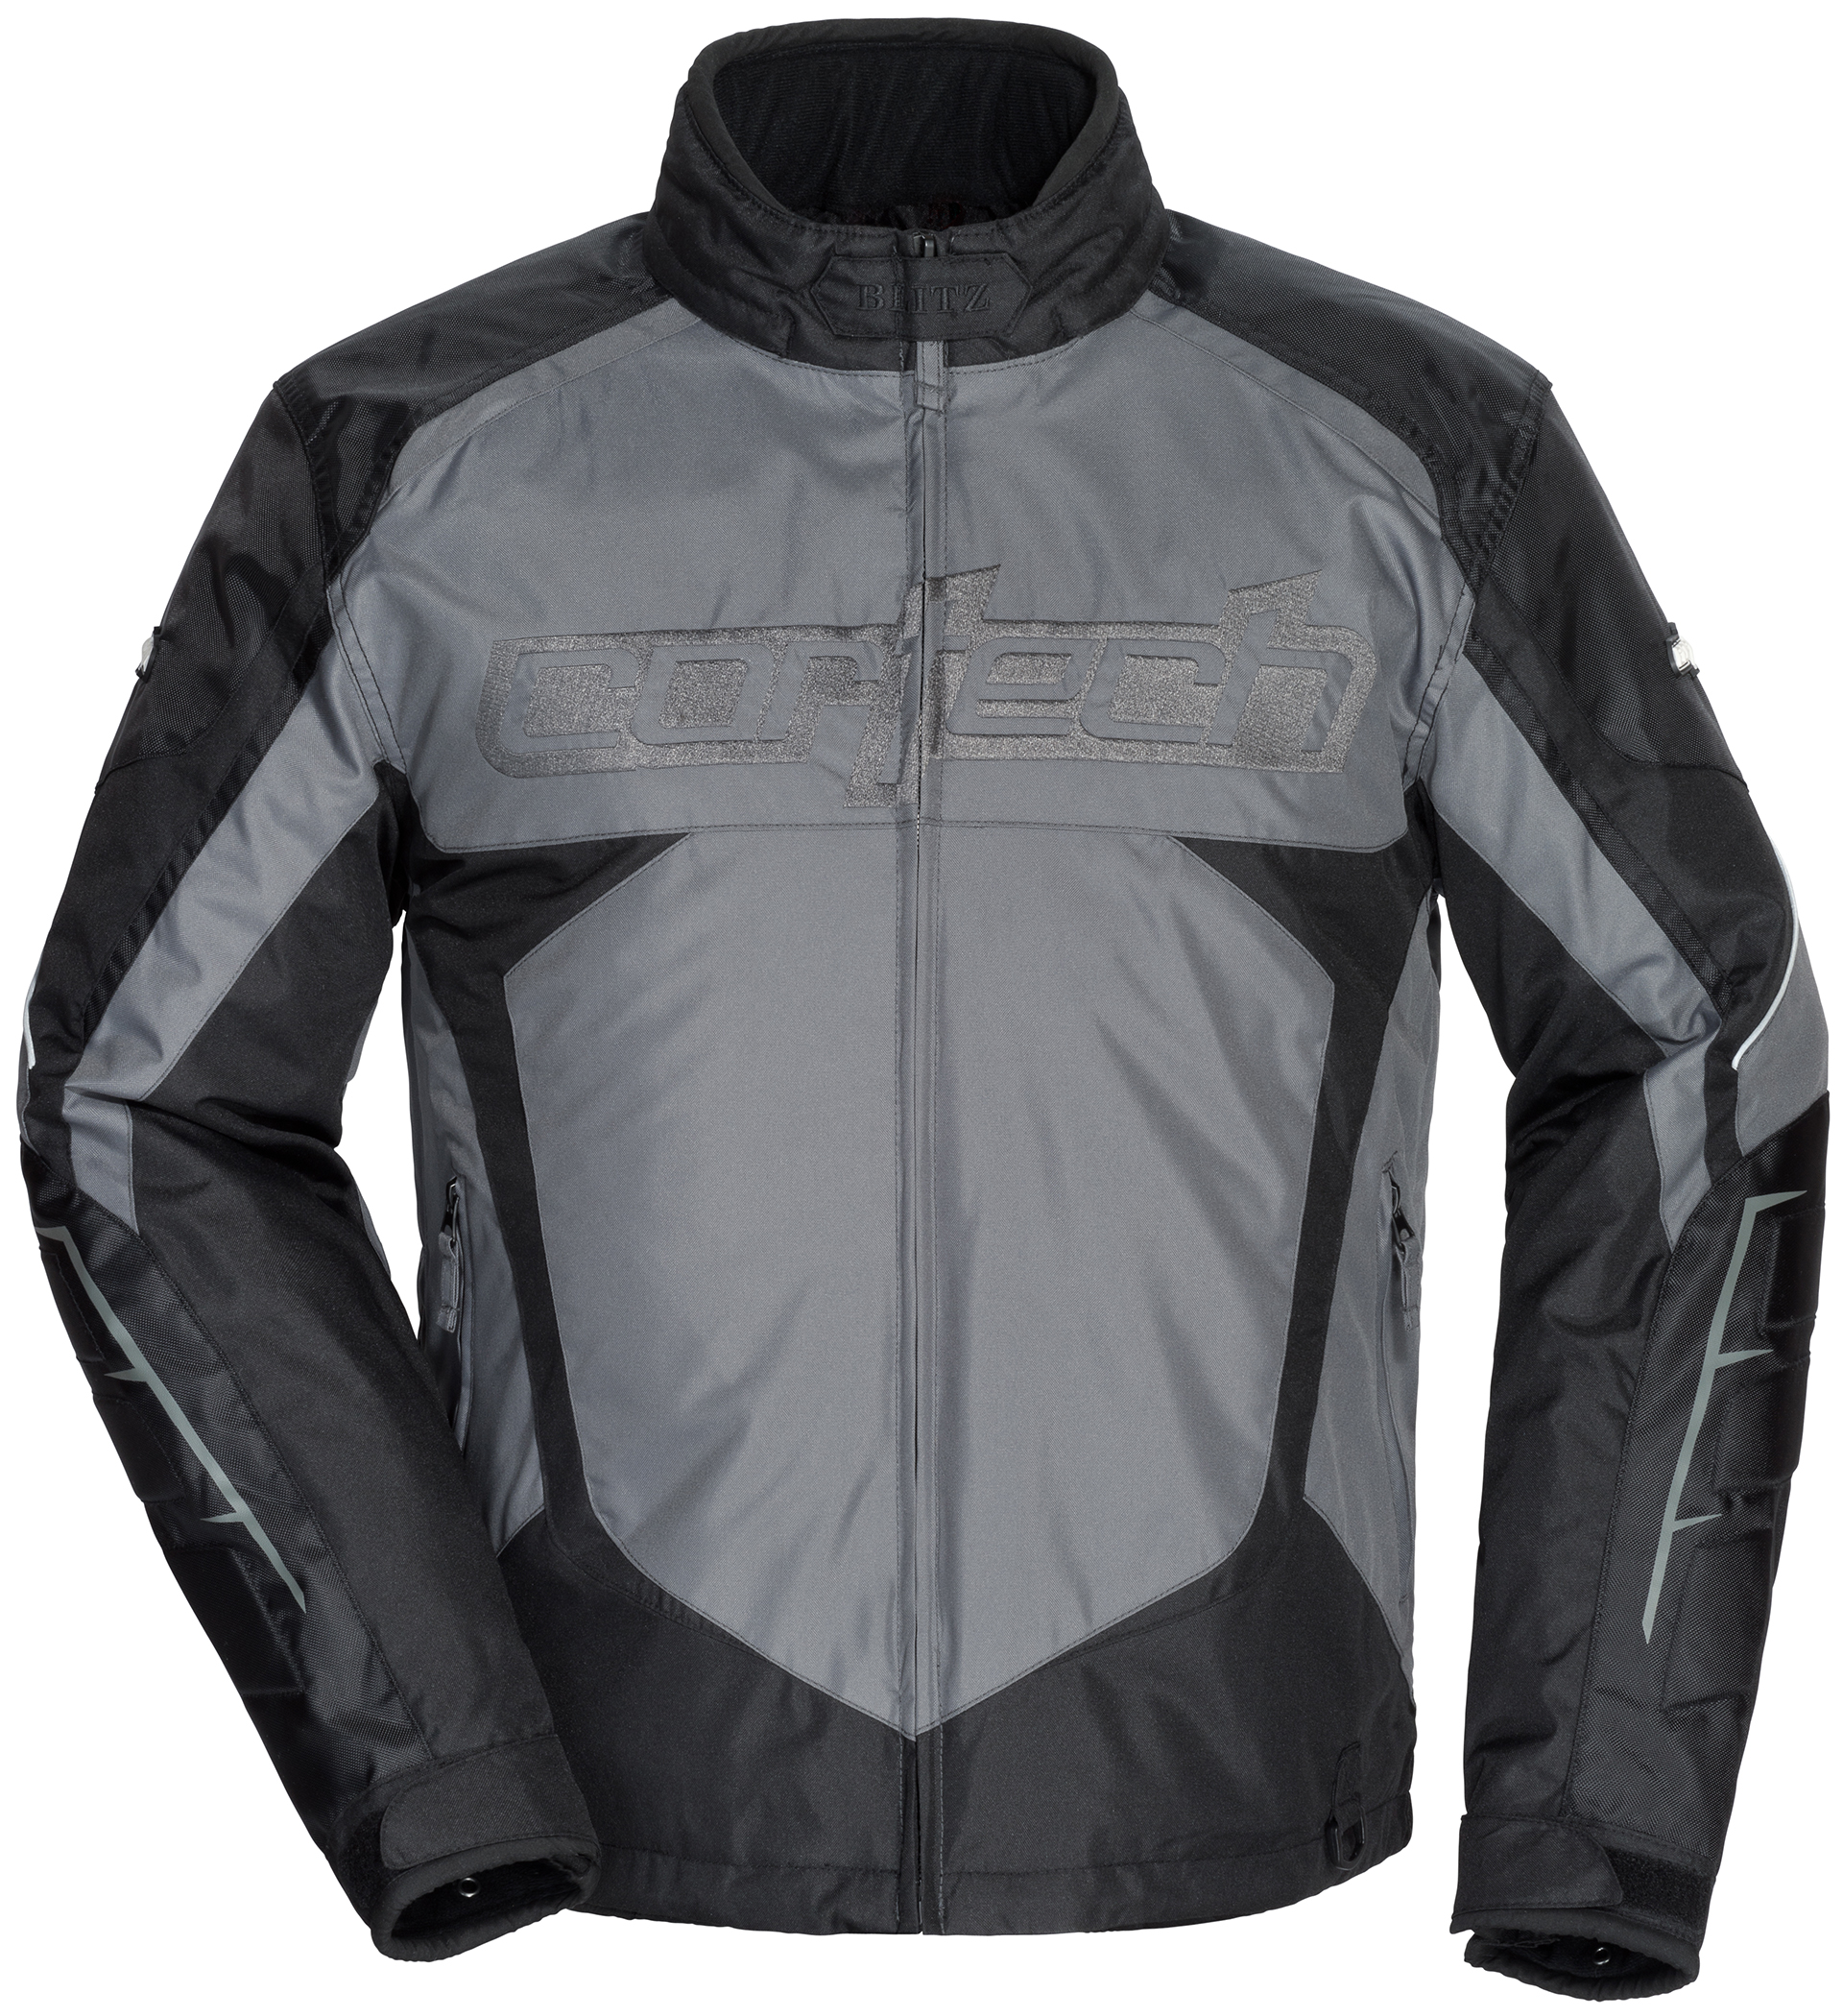 Cortech Blitz 3.0 Mens Snowcross Jacket Gunmetal/Black